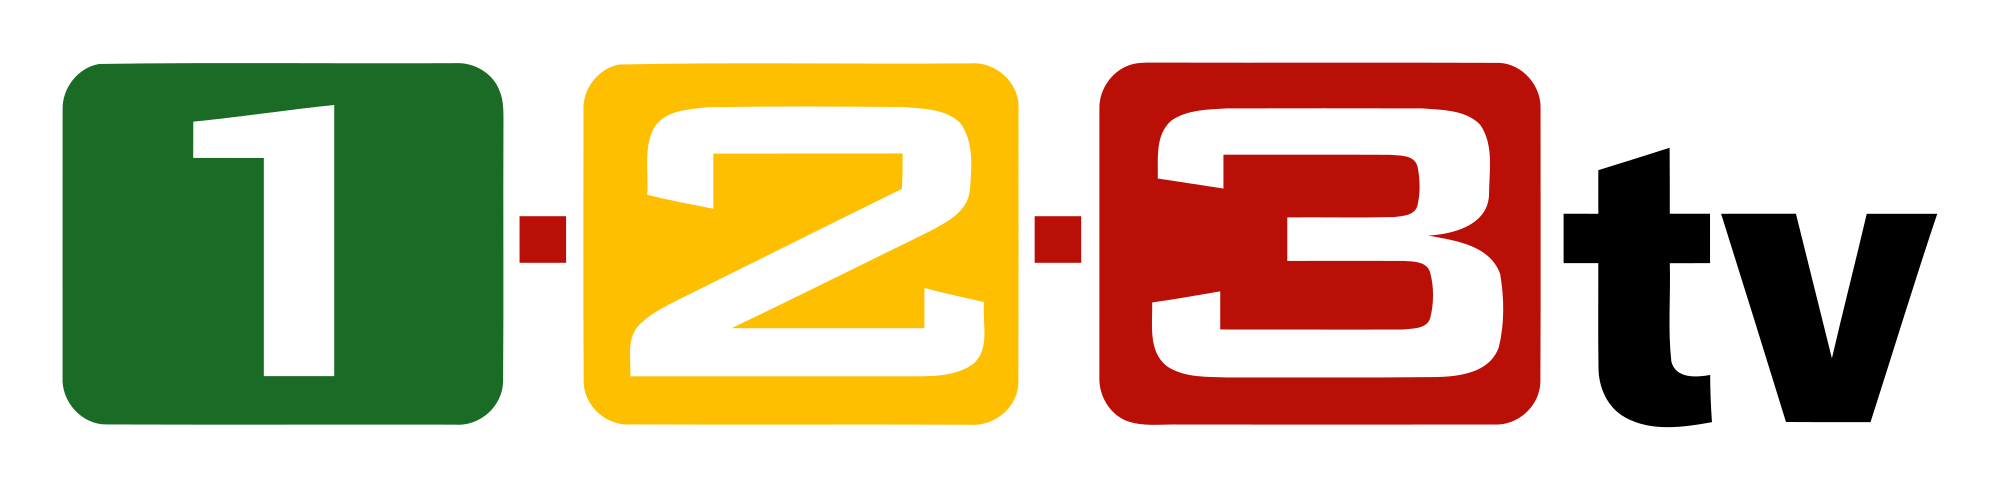 Clipart 1 2 3 jpg library library File:1-2-3-tv Logo.svg - Wikimedia Commons jpg library library